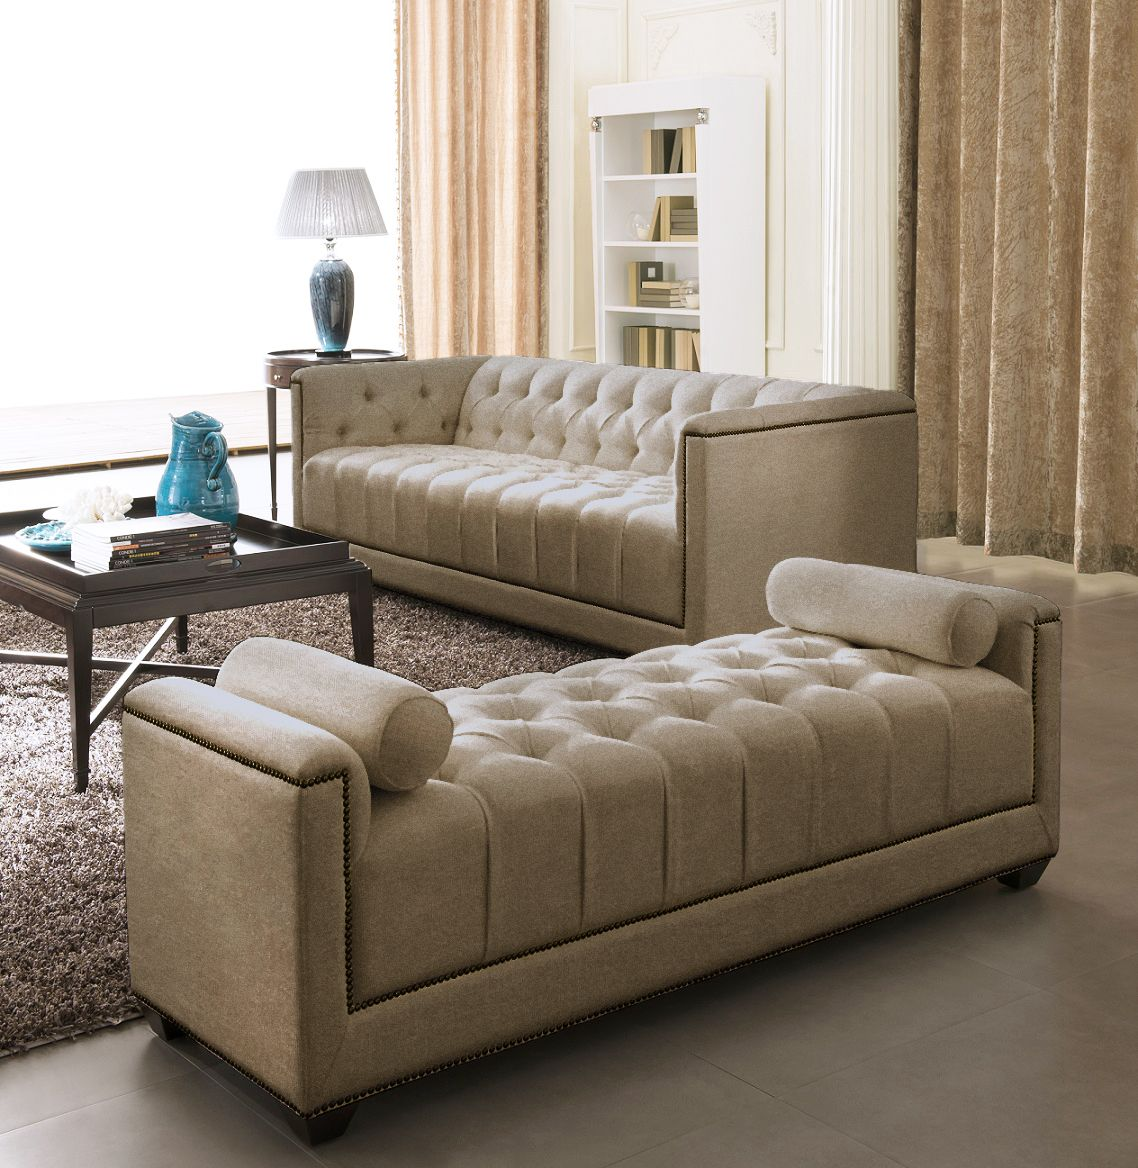 Superb Modern Sofa Set Designs For Living Room